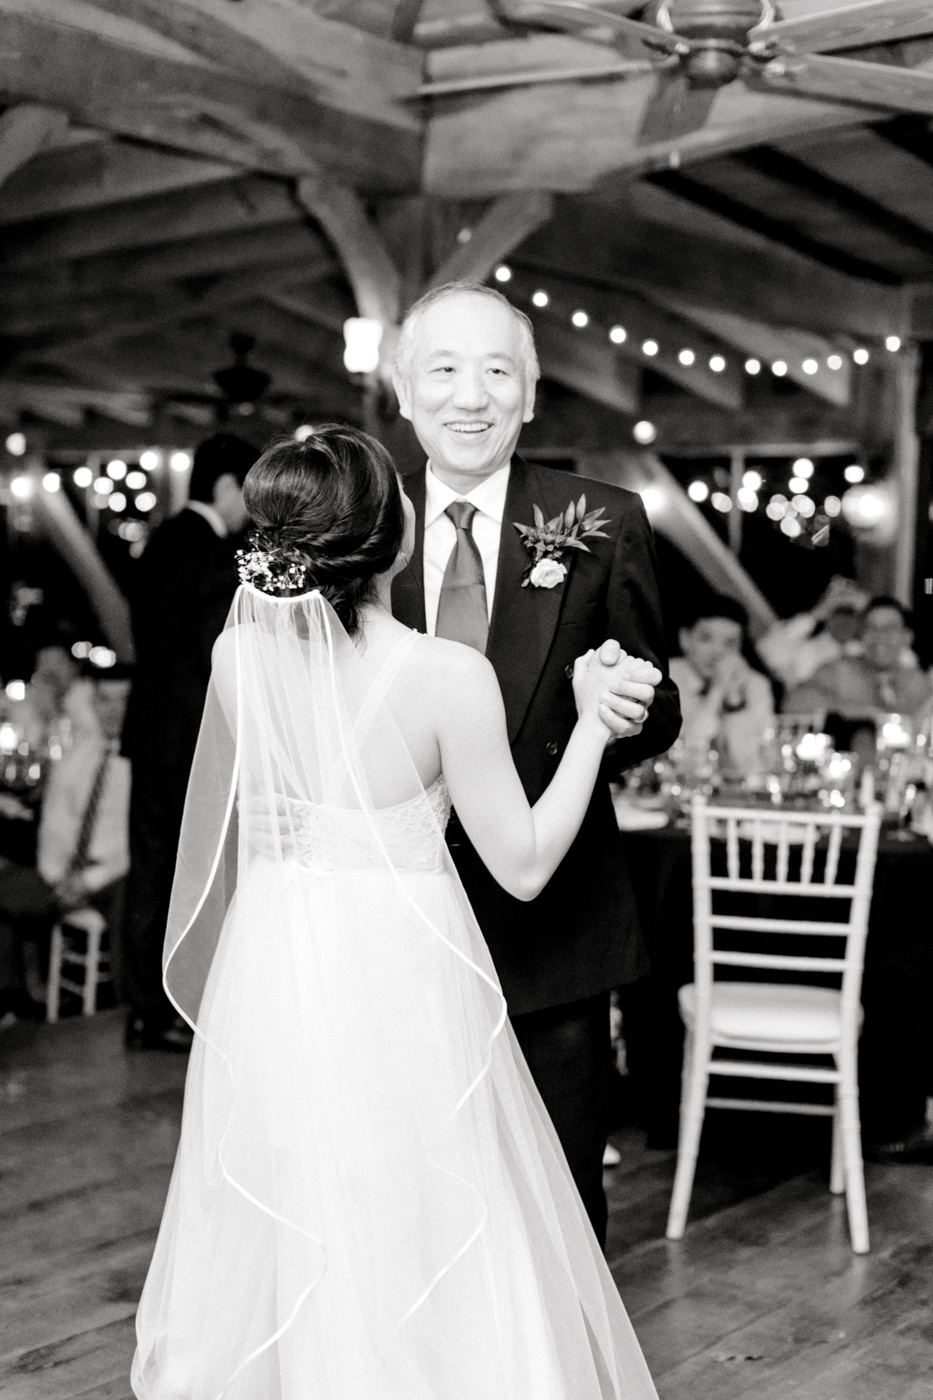 four corners photography helena and sunny rockys lake estate wedding north georgia wedding photographer best atlanta wedding photographer (39 of 51).jpg